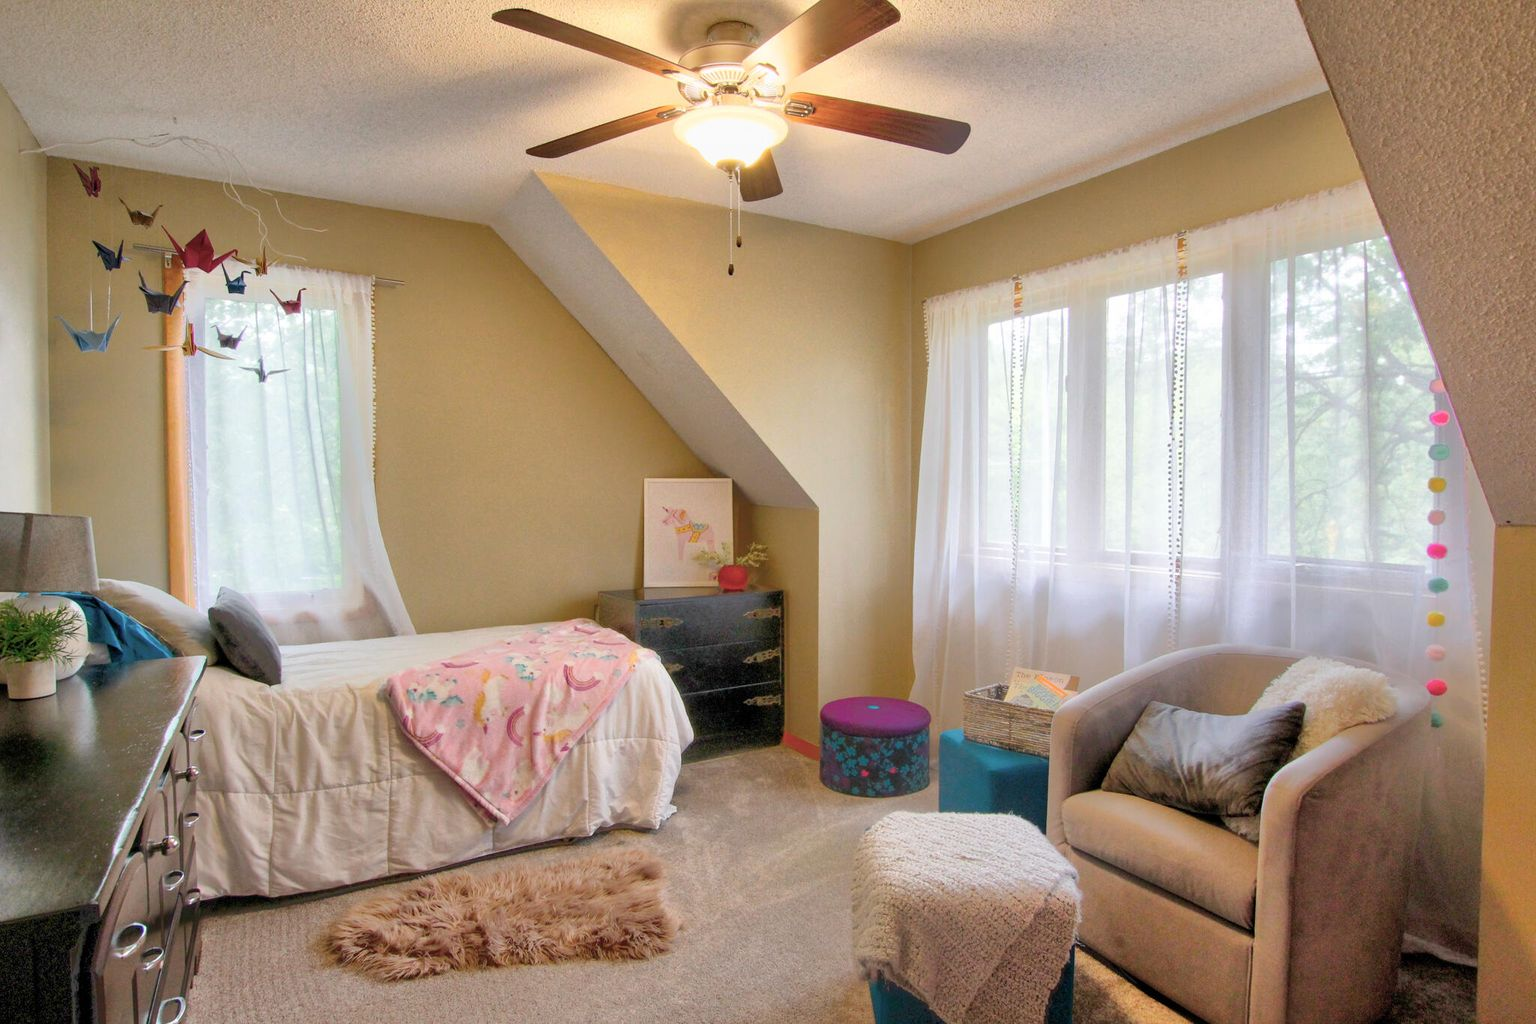 307 LINDELL DR, COLUMBIA, MO 65203